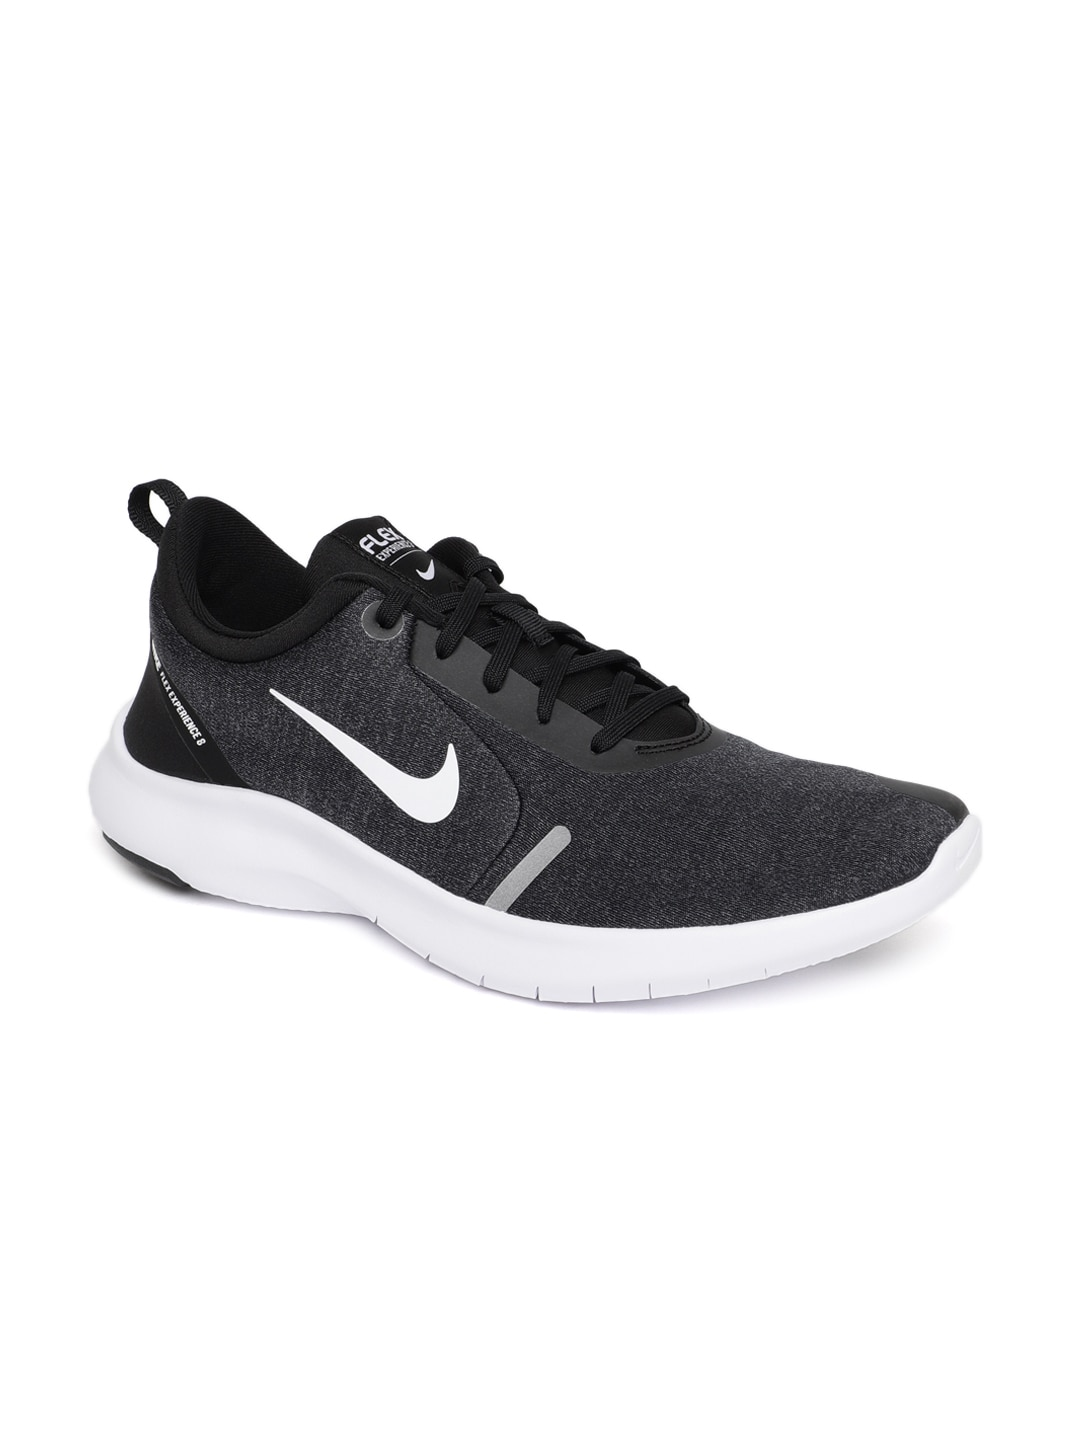 f7ab69e5014 Nike Running Shoes - Buy Nike Running Shoes Online